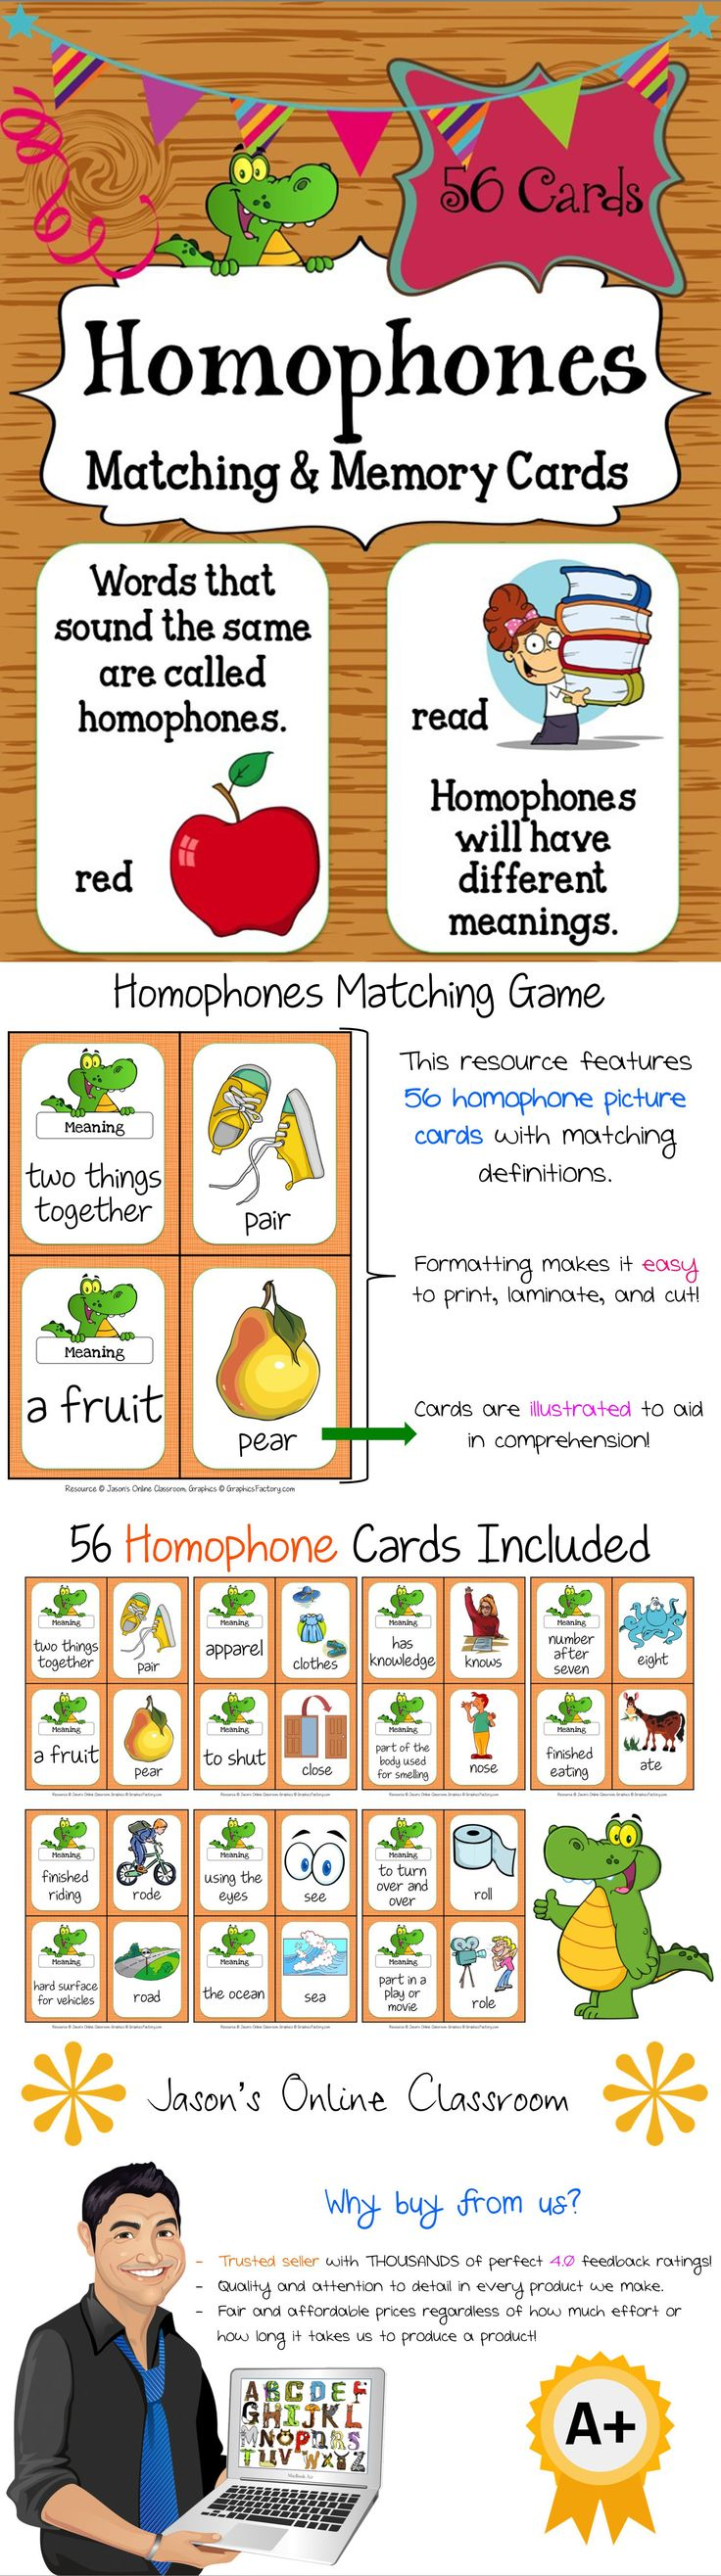 Worksheet Homophone Matching Game 1000 images about 2nd grade homeschooling on pinterest homophone matching game make learning fun